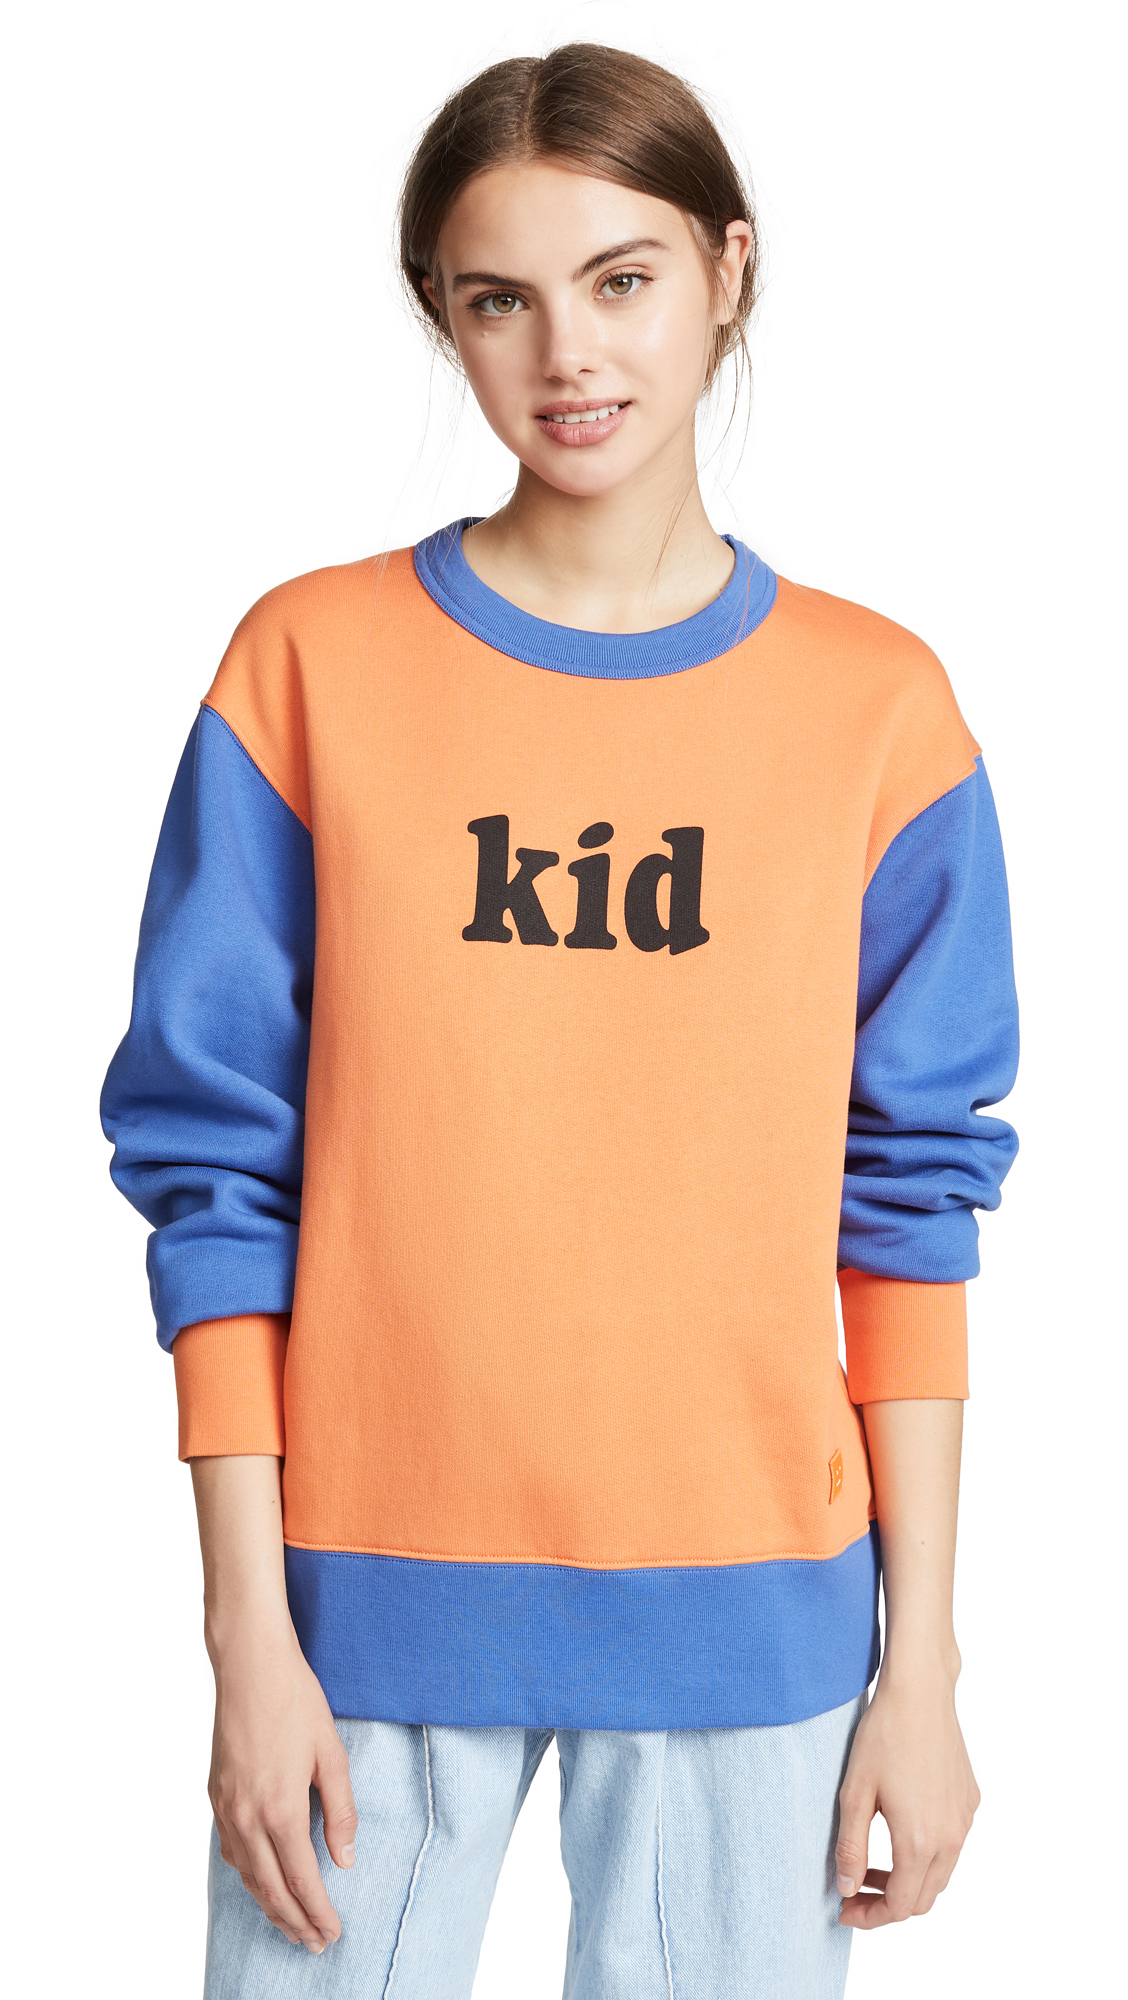 Acne Studios Contrast Sweatshirt In Orange/Blue